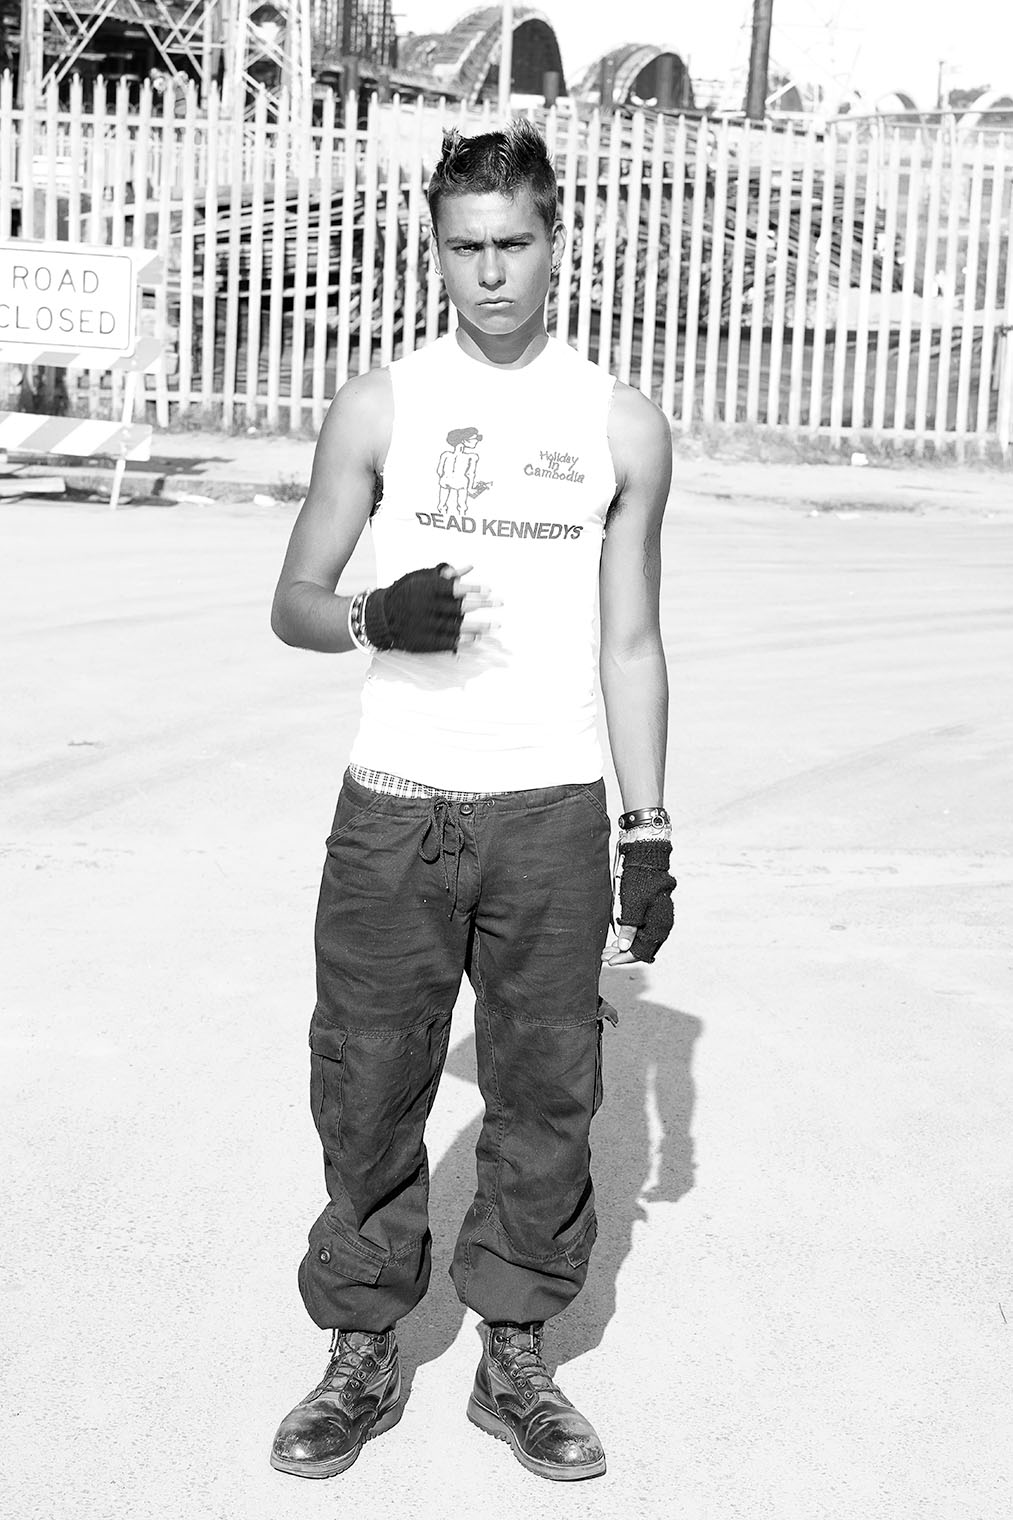 masculine energy fashion model in cargo pants, boots and 80's t-shirt on set